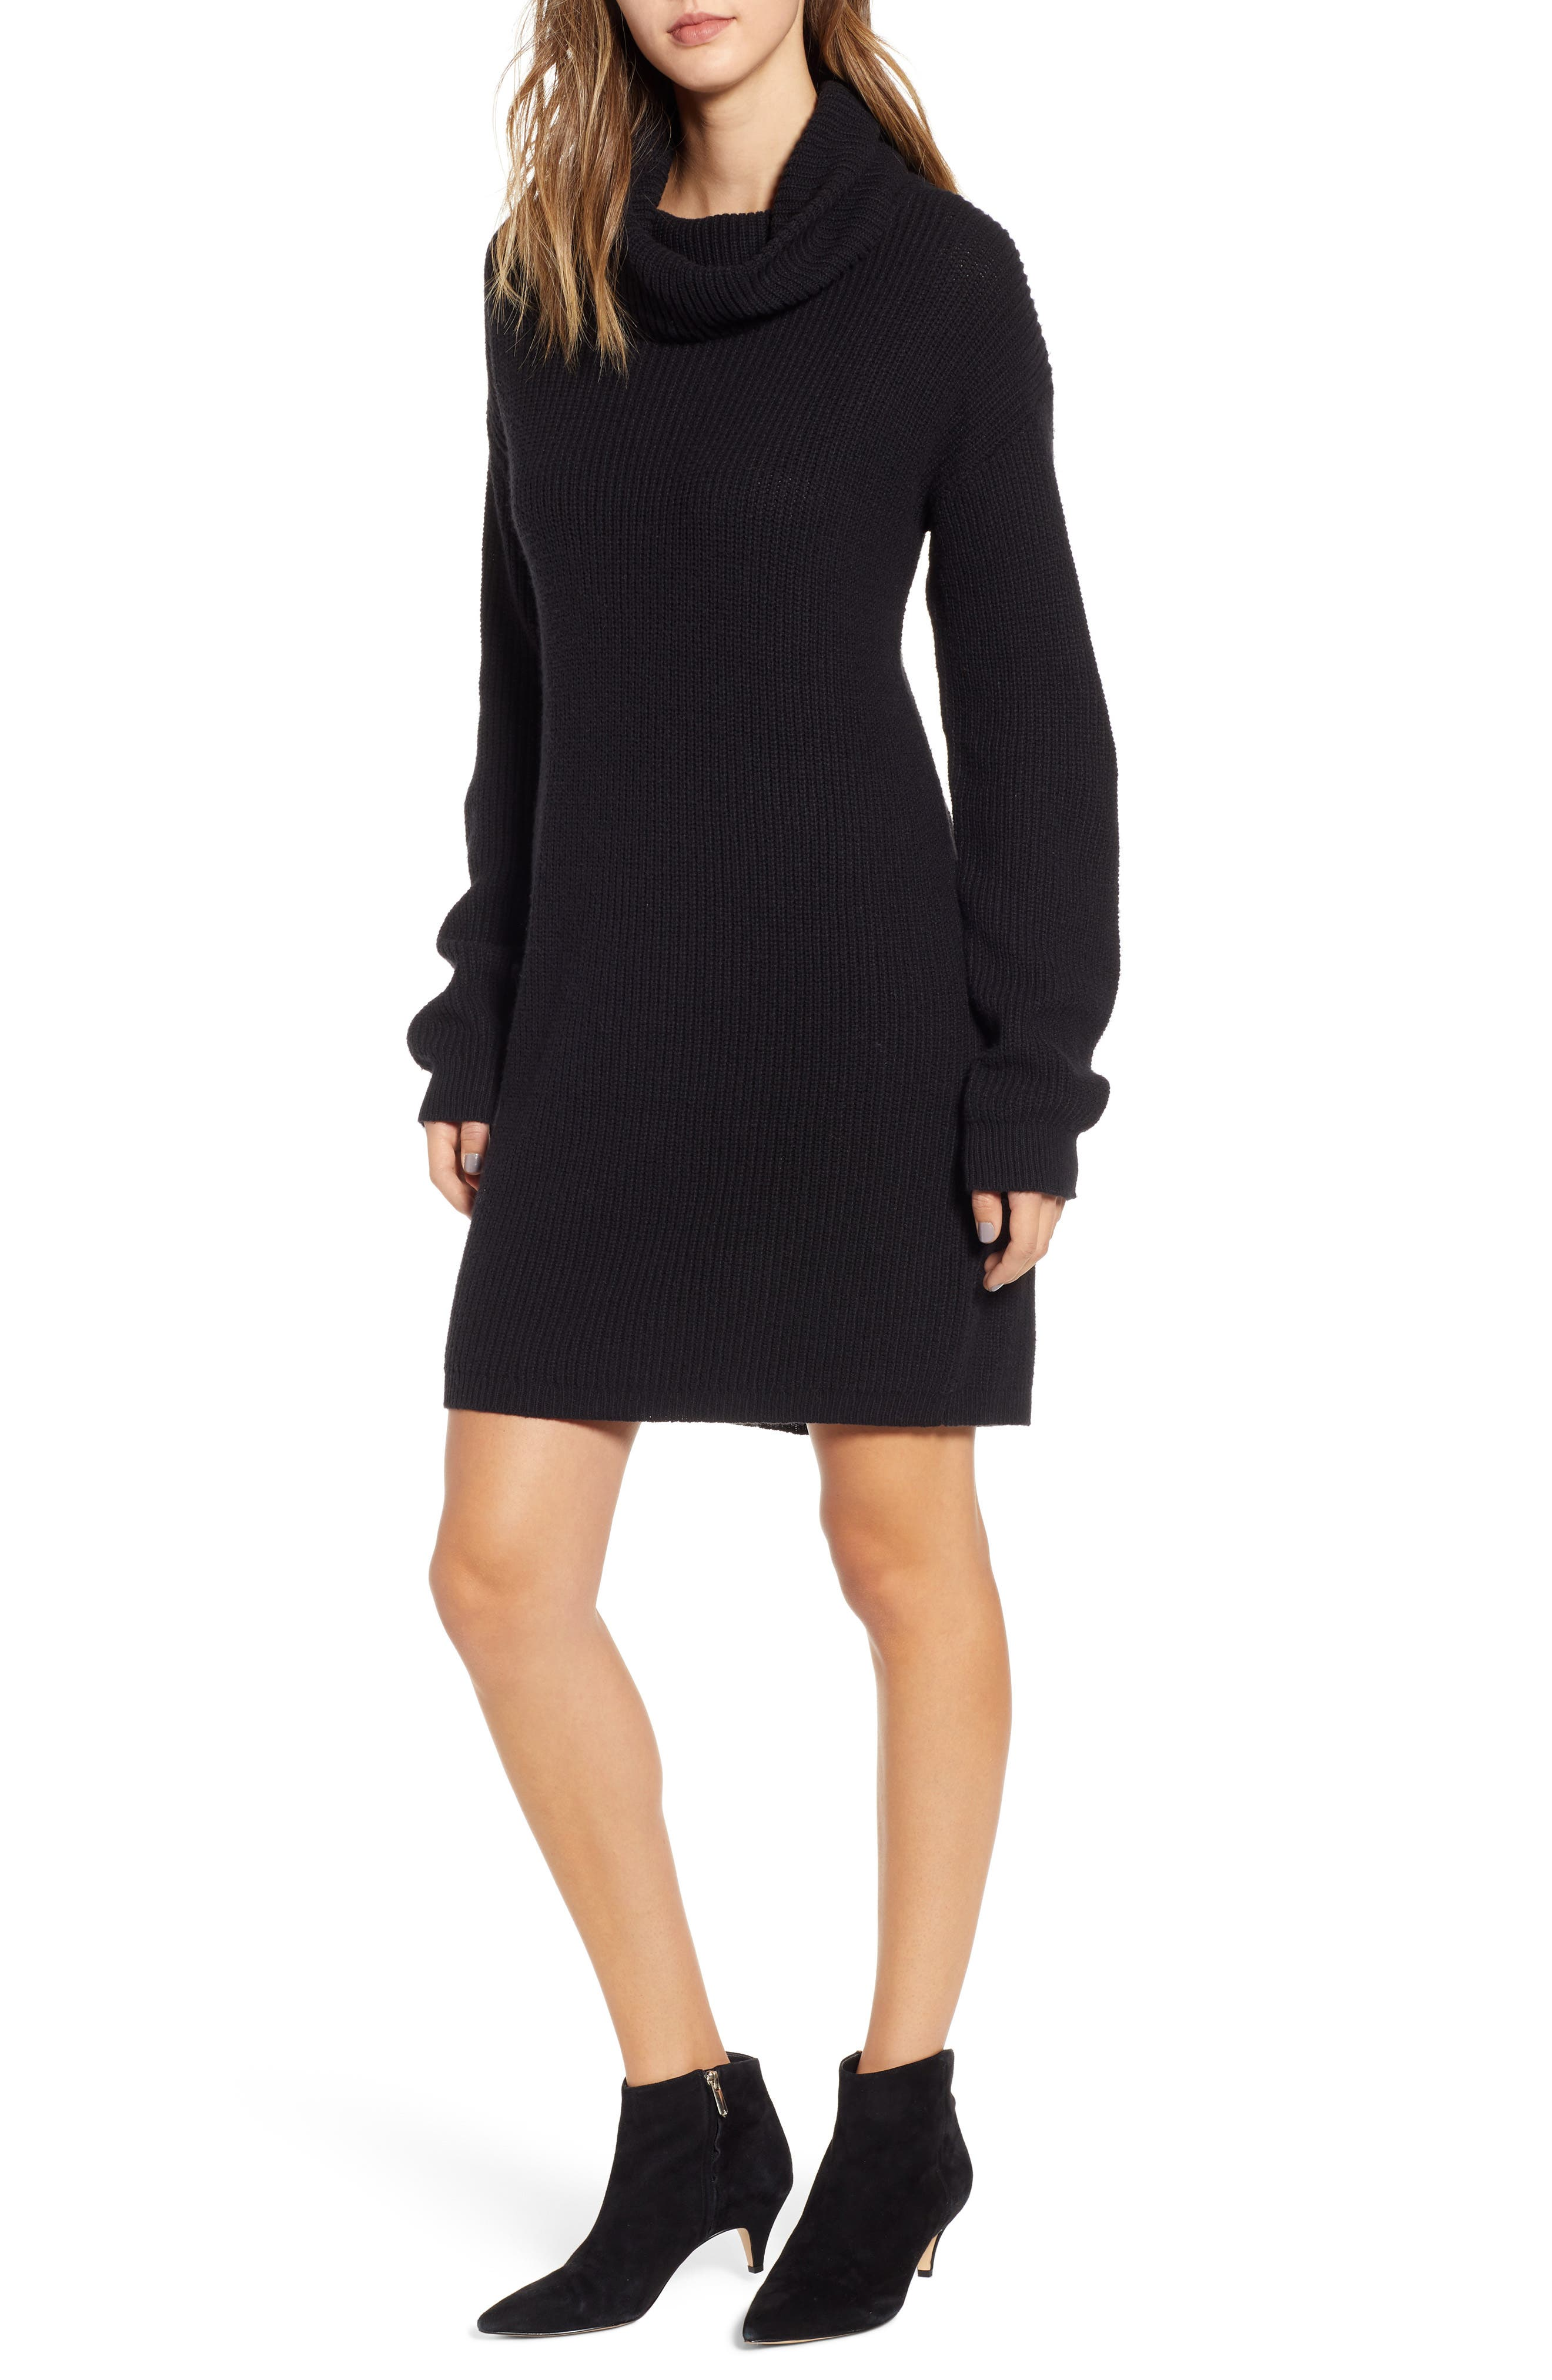 Sweater Dresses Tall Boots